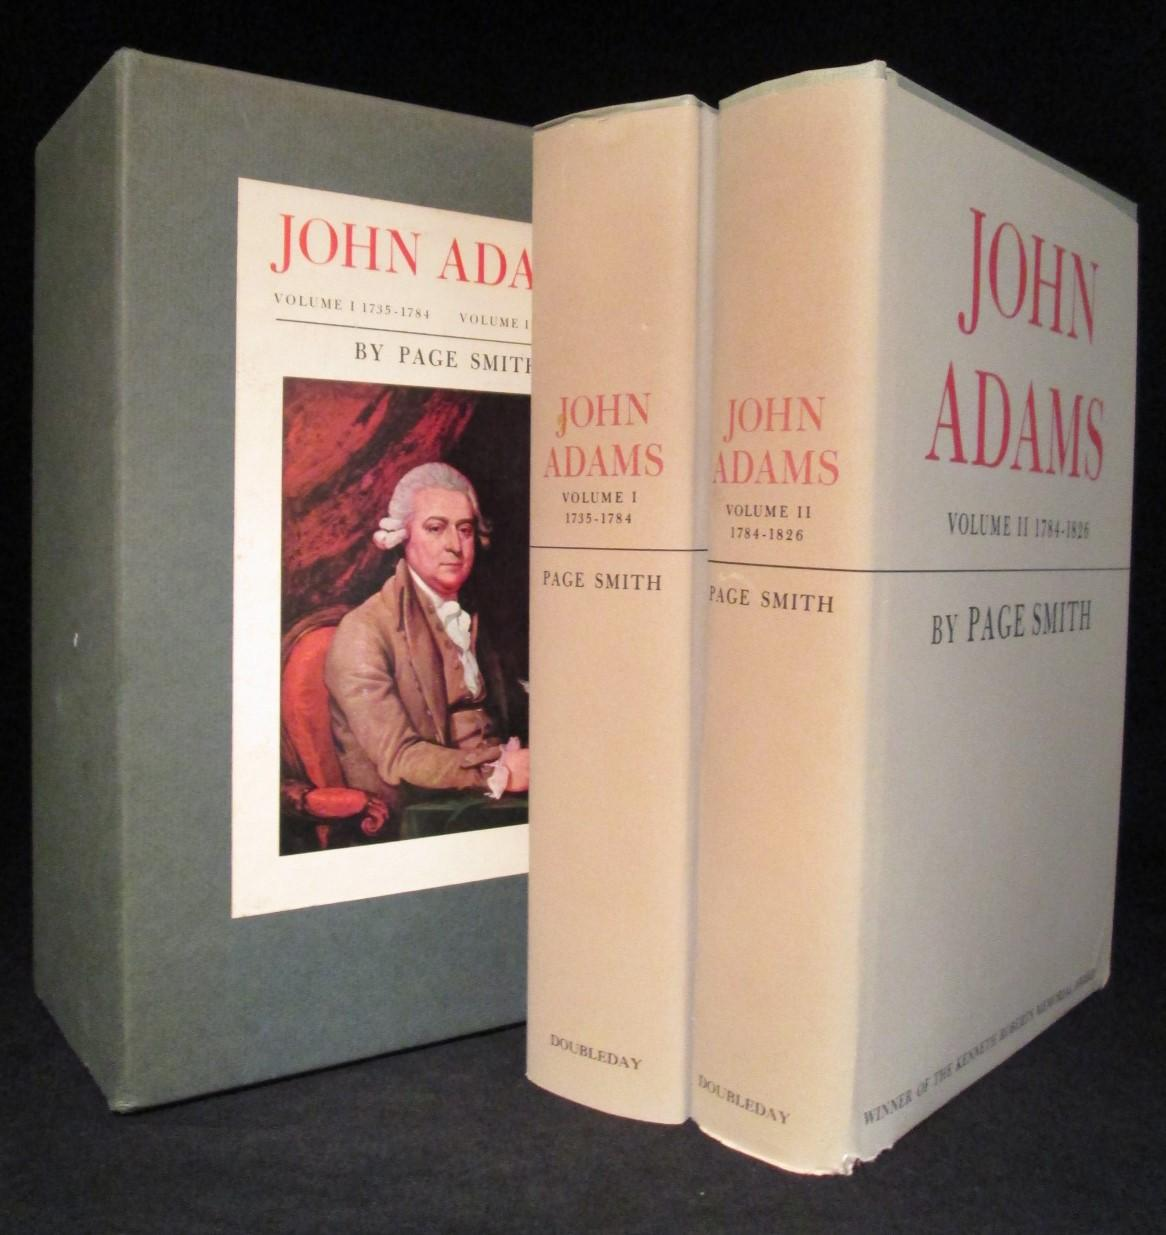 Image result for john adams page smith